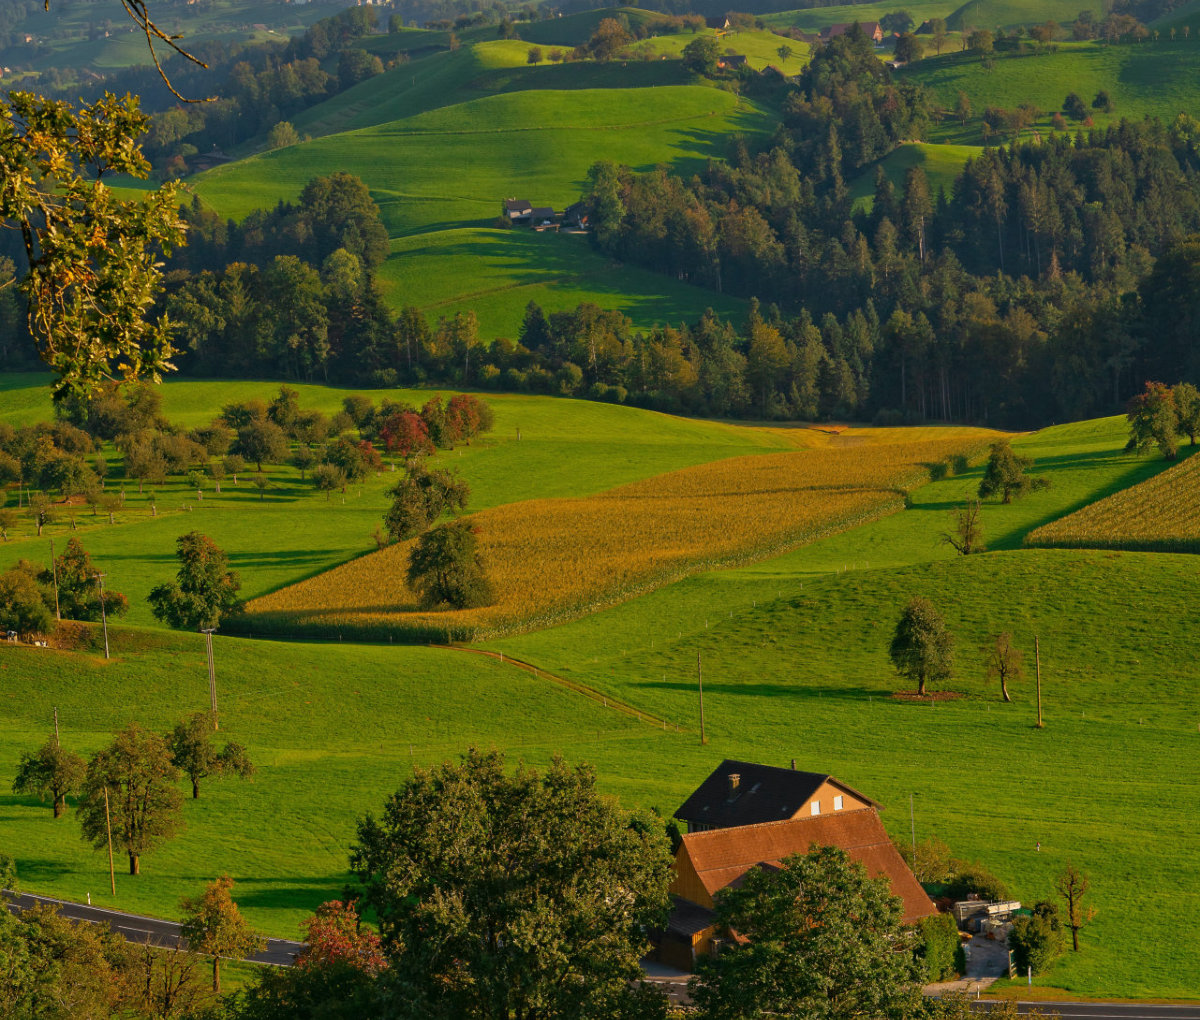 A farm in a valley